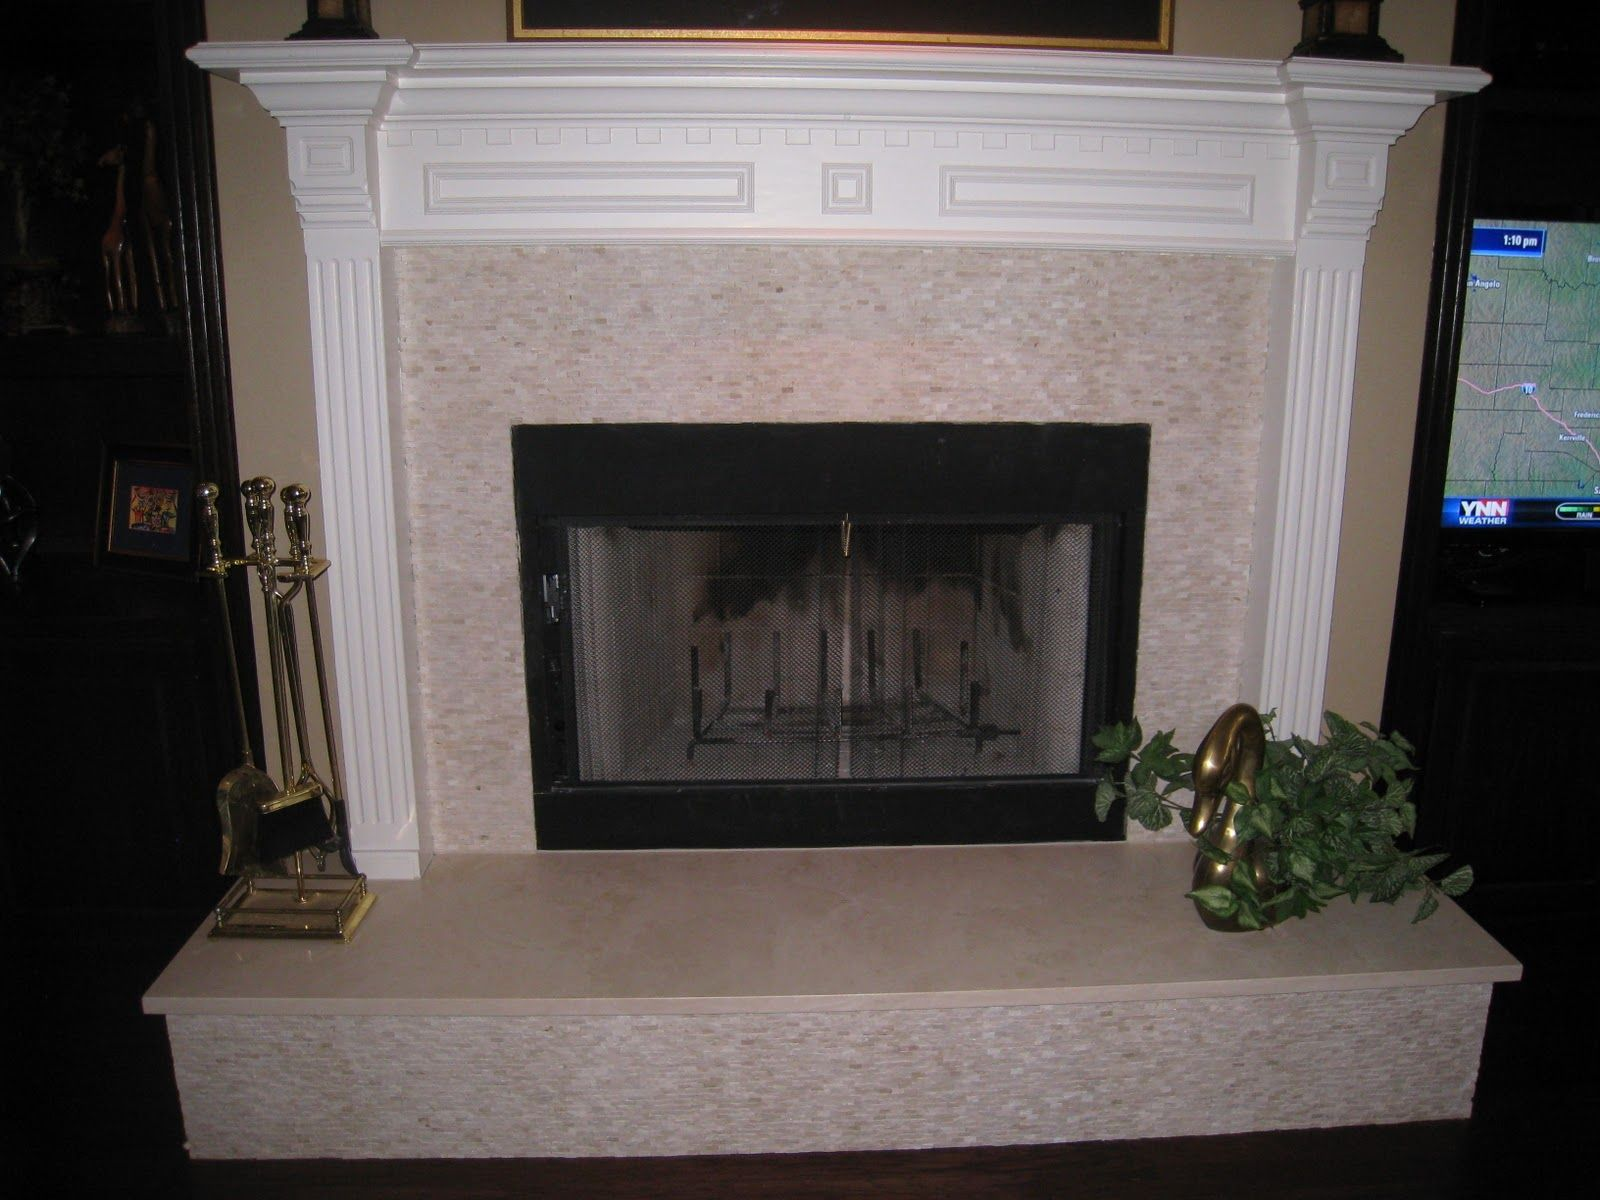 Tile Fireplaces Design Ideas modern tiled fireplace surround ideas fireplace mantel design Tile Fireplace Designs Tile From Diamond Tech With A On This Fireplace